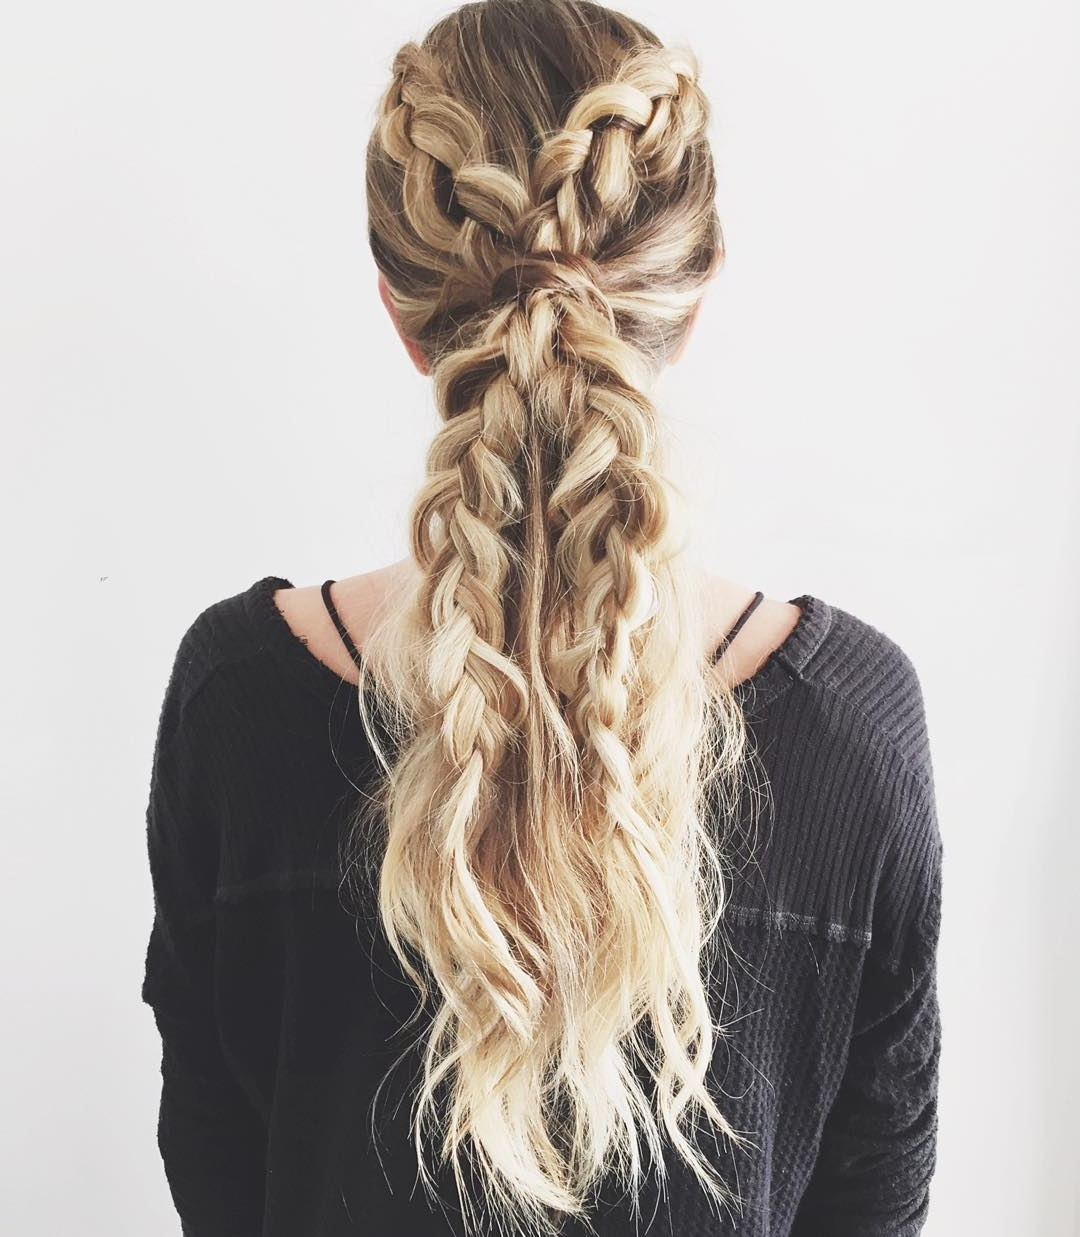 Hairstyle Guru Pertaining To Favorite Messy Ponytail Hairstyles With Side Dutch Braid (View 5 of 20)